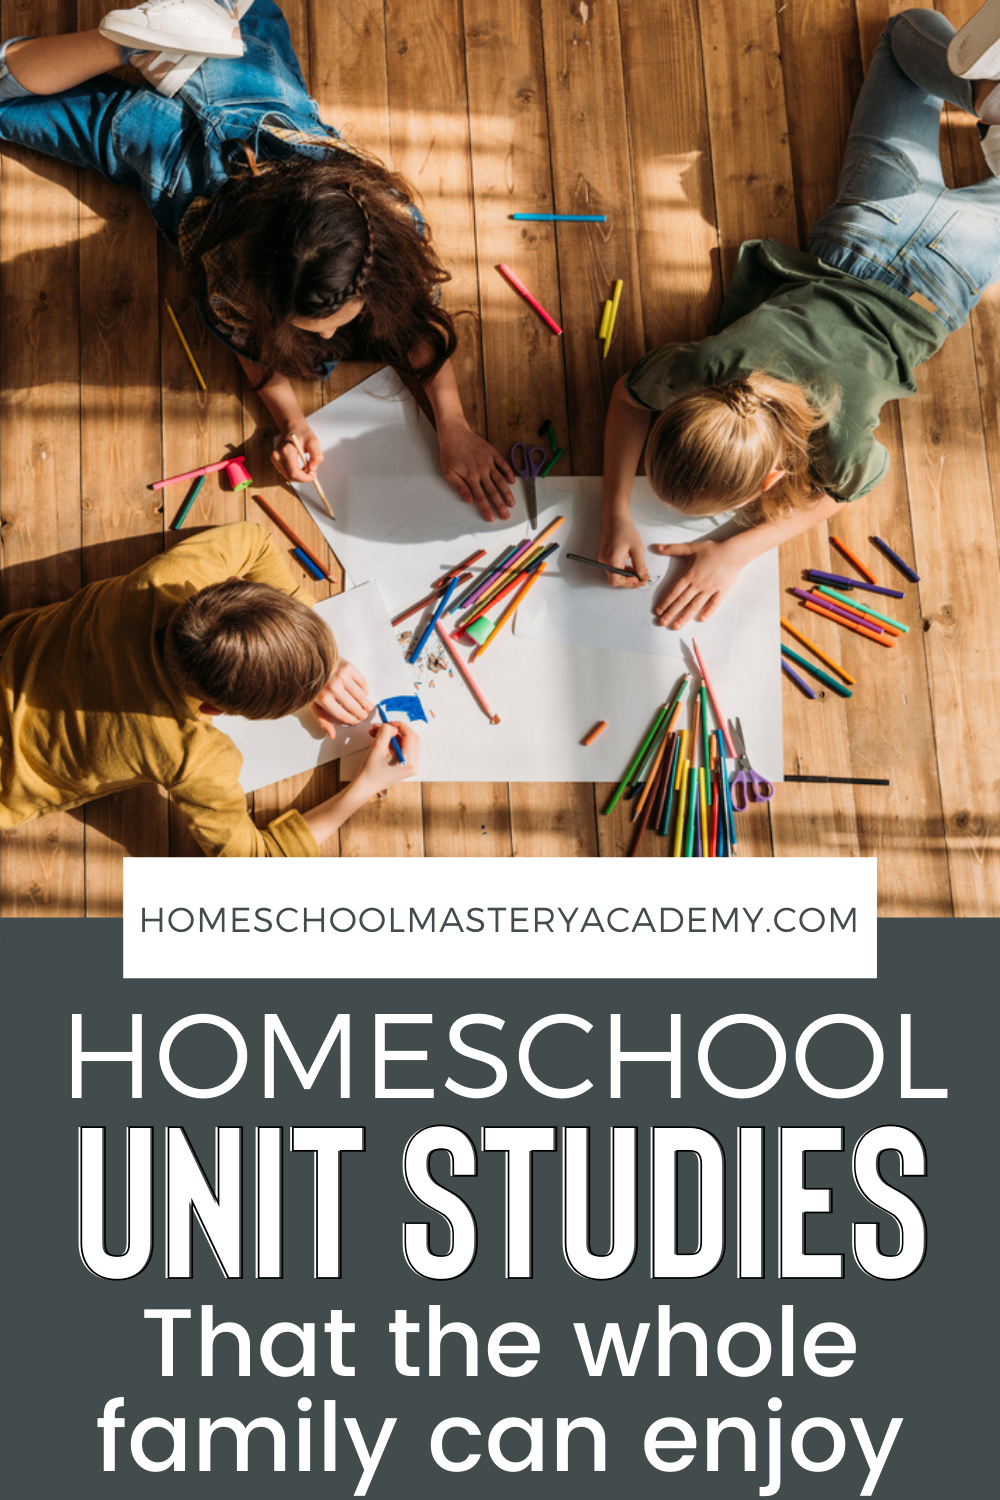 Homeschool Unit Studies for the Entire Family